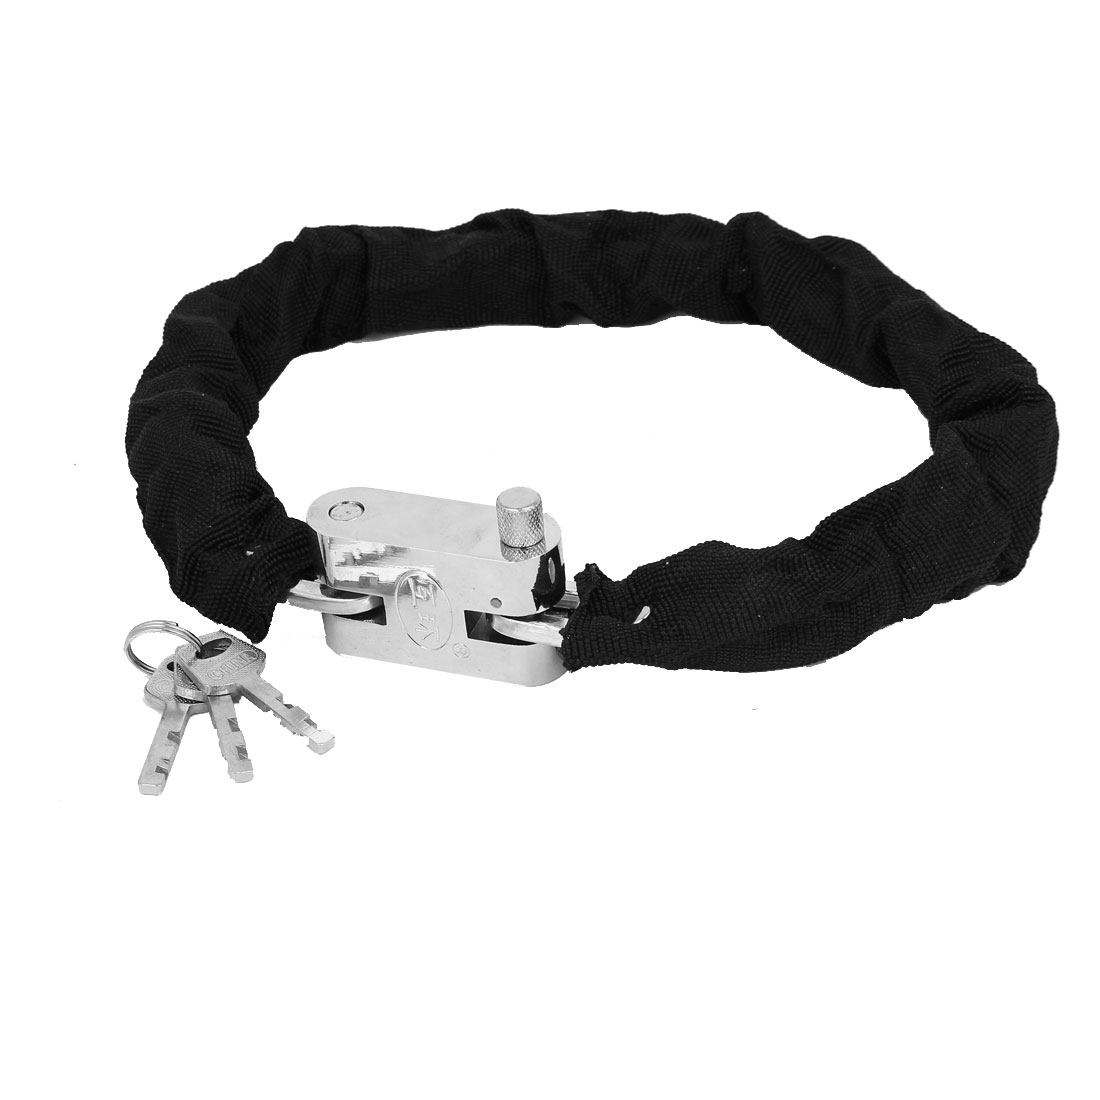 Cycling Bike Bicycle Security Chain Lock Padlock 65cm Length w Keys